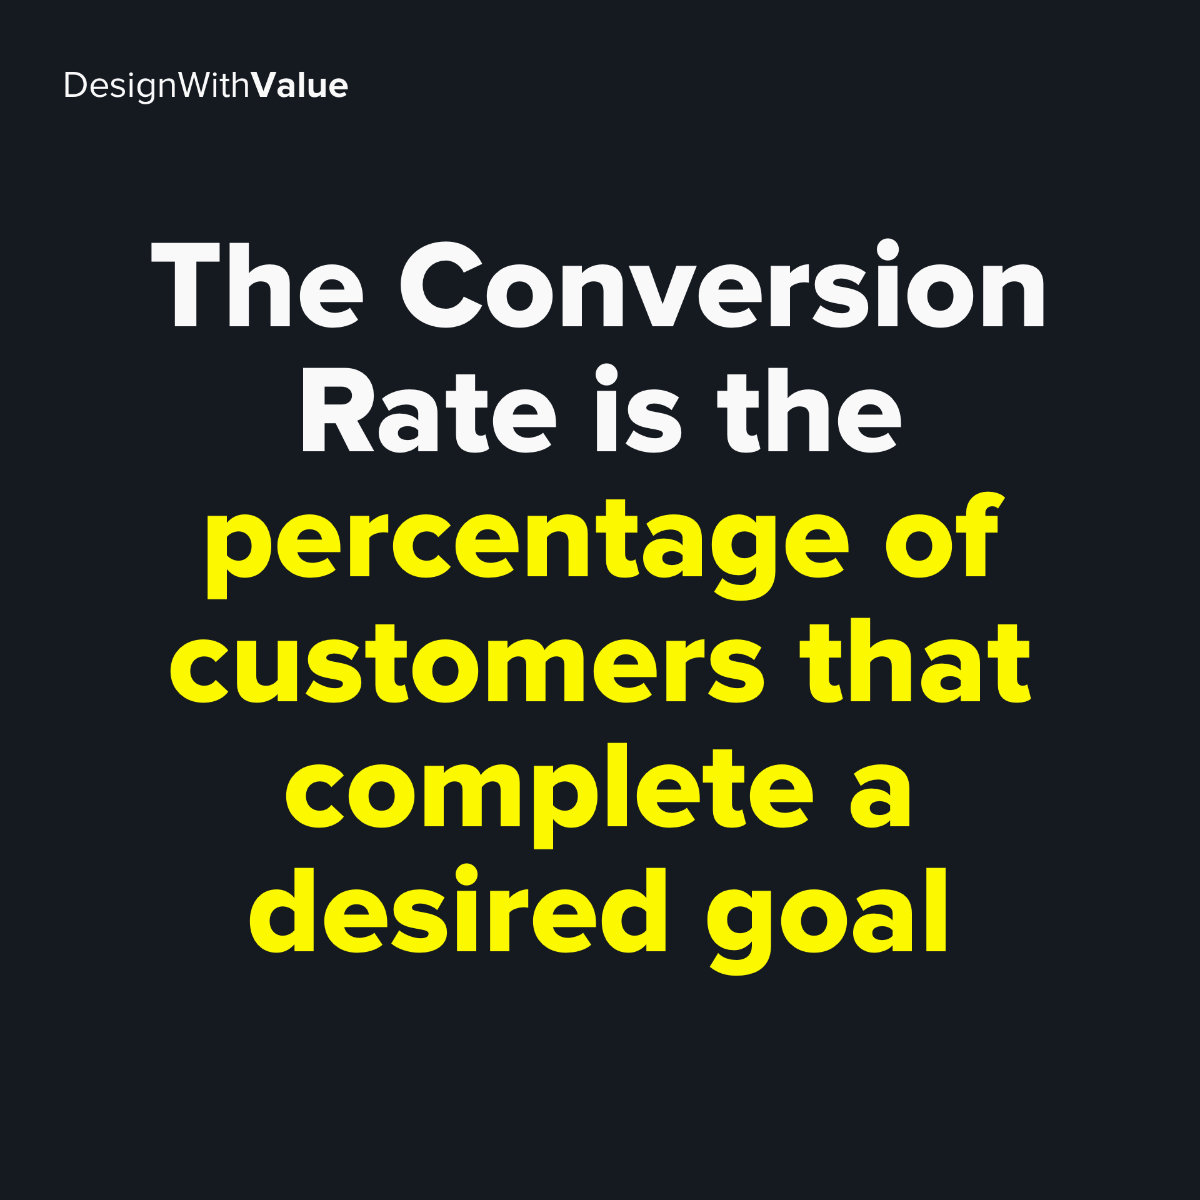 The conversion rate is the percentage of customers that complete a desired goal